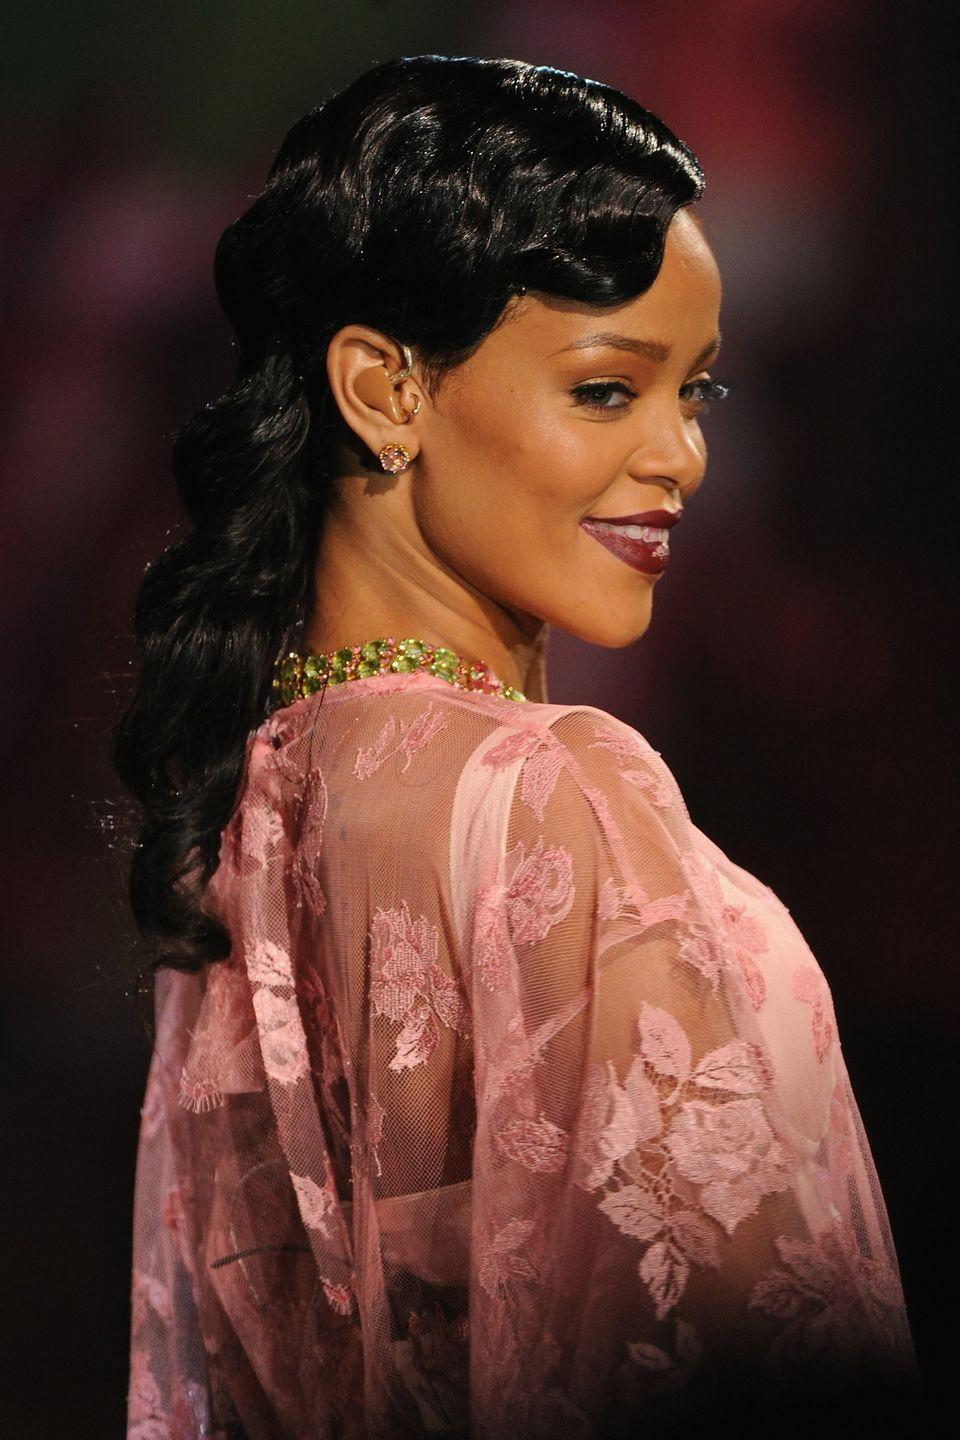 <p>For the Victoria Secret Fashion Show, Rihanna performs wearing romantic, retro-inspired finger waves.</p>